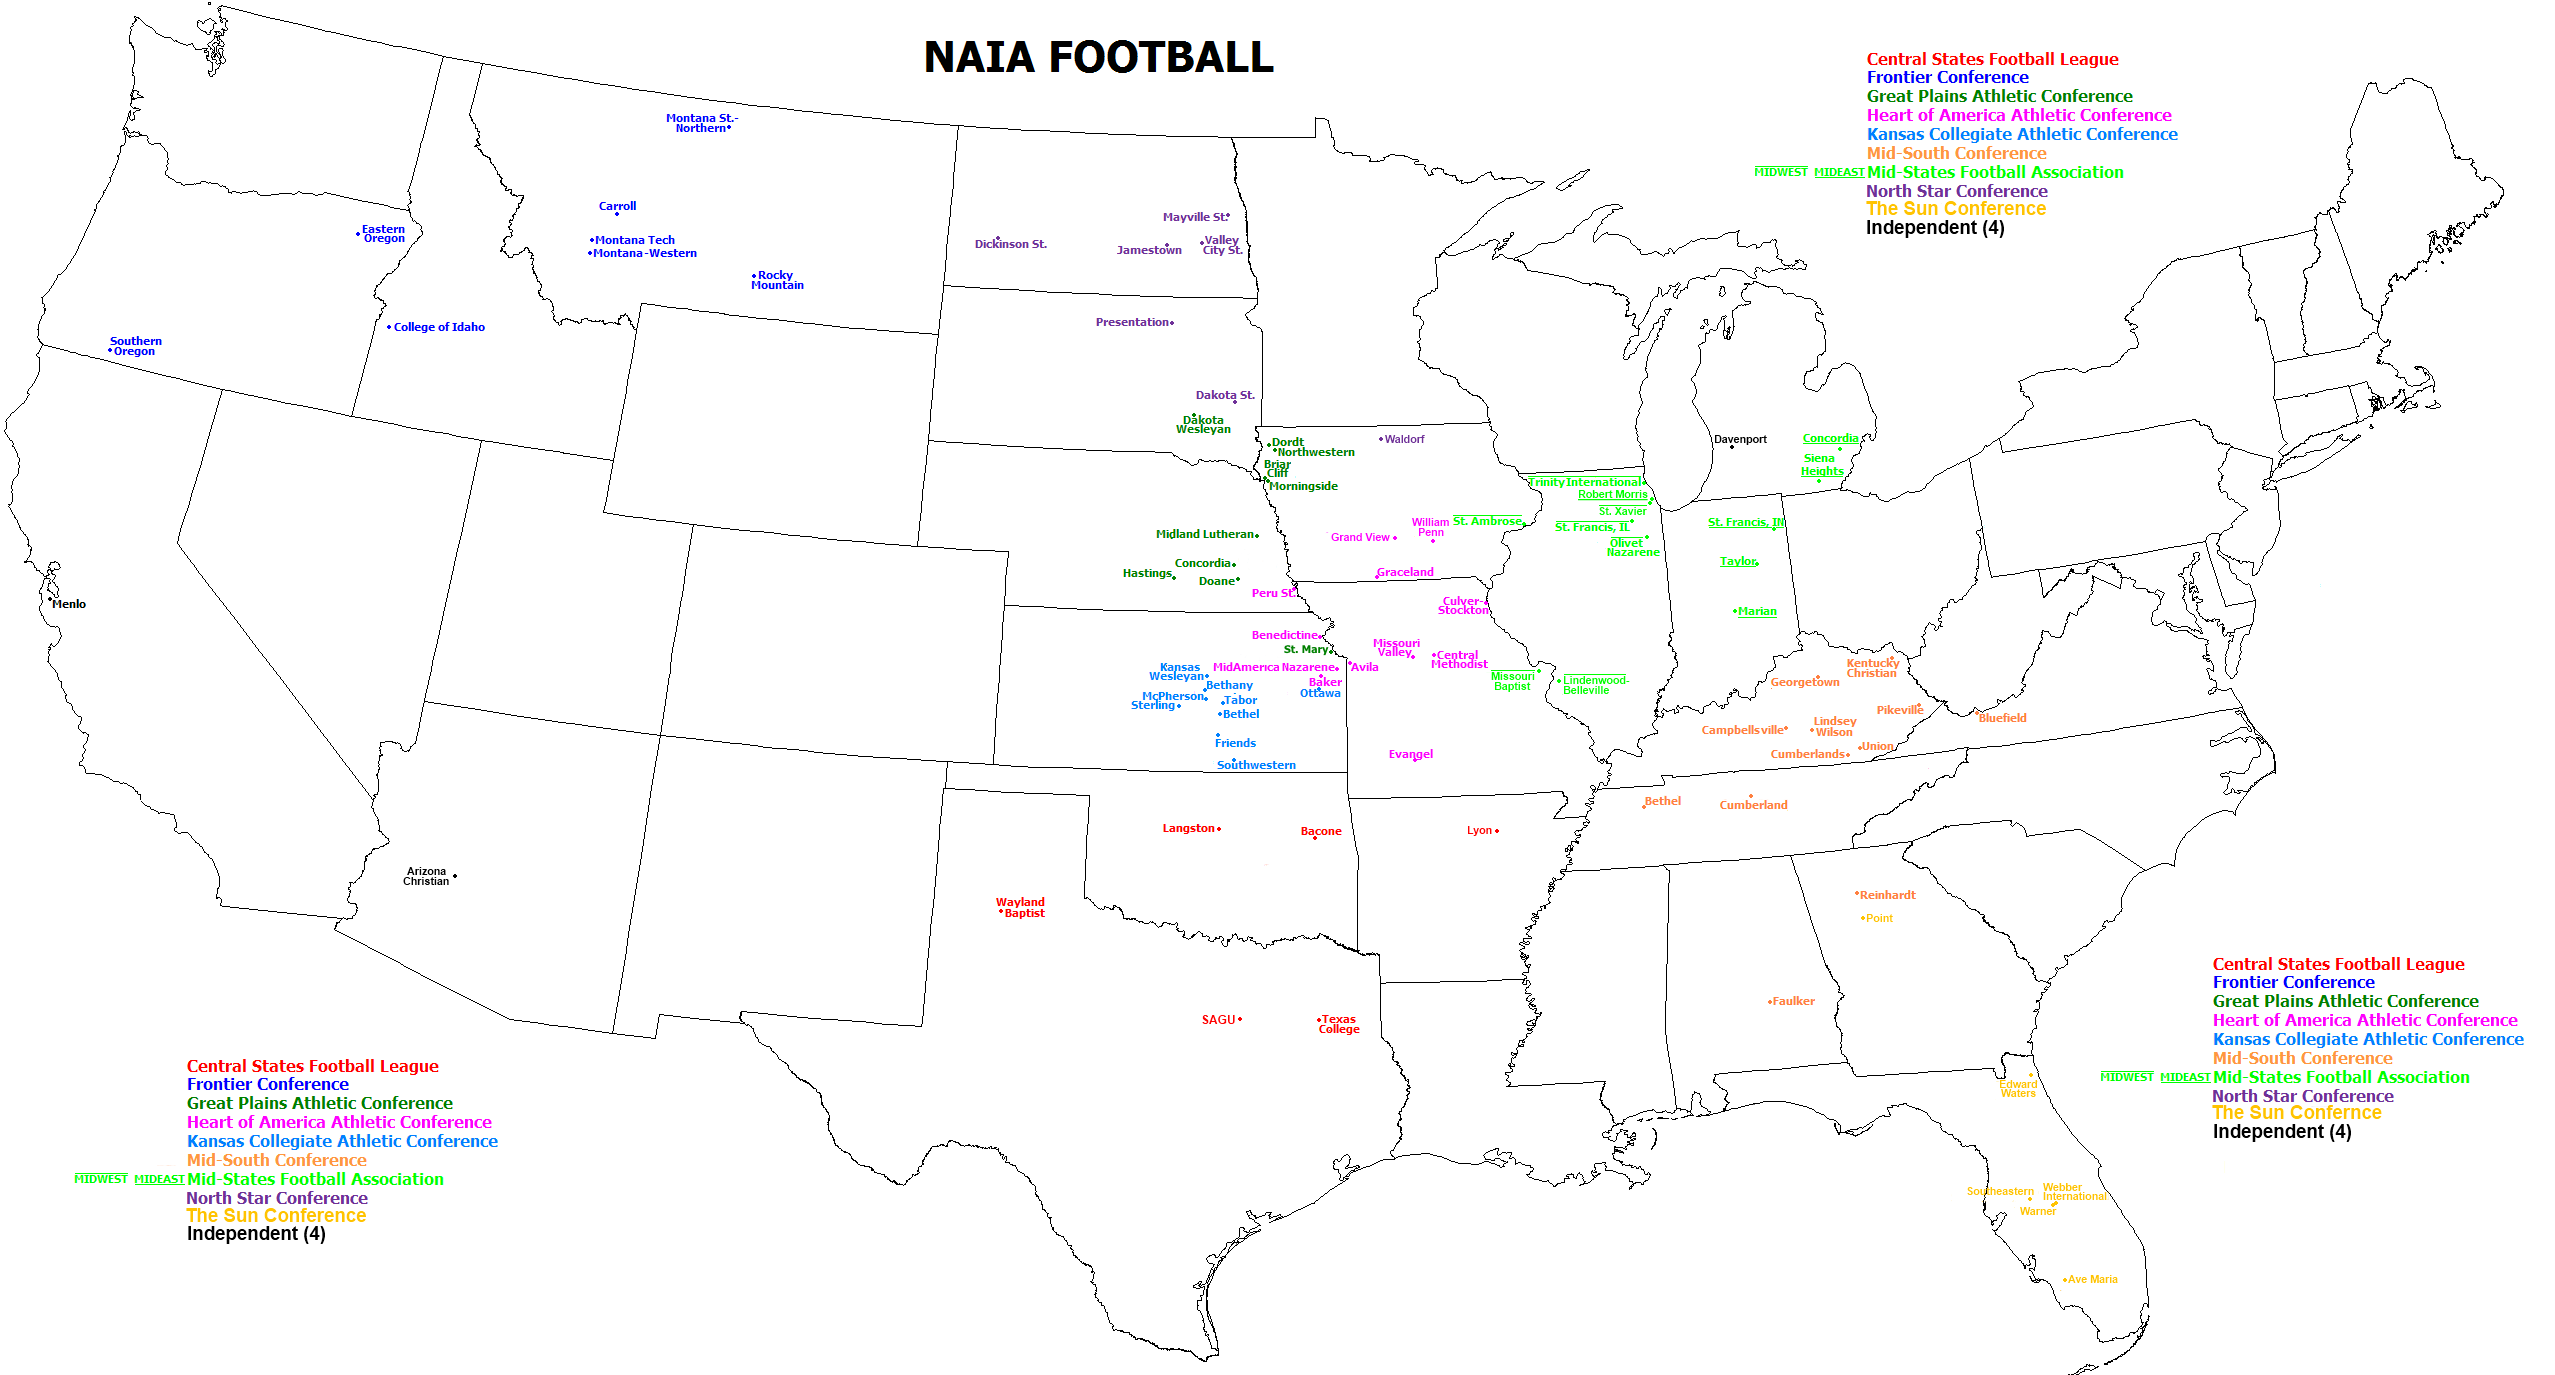 List of NAIA football programs - Wikipedia Map Of Northwest Christian University on map of defiance college, map of erskine college, map of messiah college, map of montreat college, map of hayward field, map of reed college, map of colorado christian university, map of columbia college, map of greenville college, map of saint anselm college, map of milligan college, map of linfield college, map of lane county, map of roberts wesleyan college, map of hiram college, map of rogue community college, map of lynchburg college, map of lake erie college, map of chemeketa community college, map of dordt college,